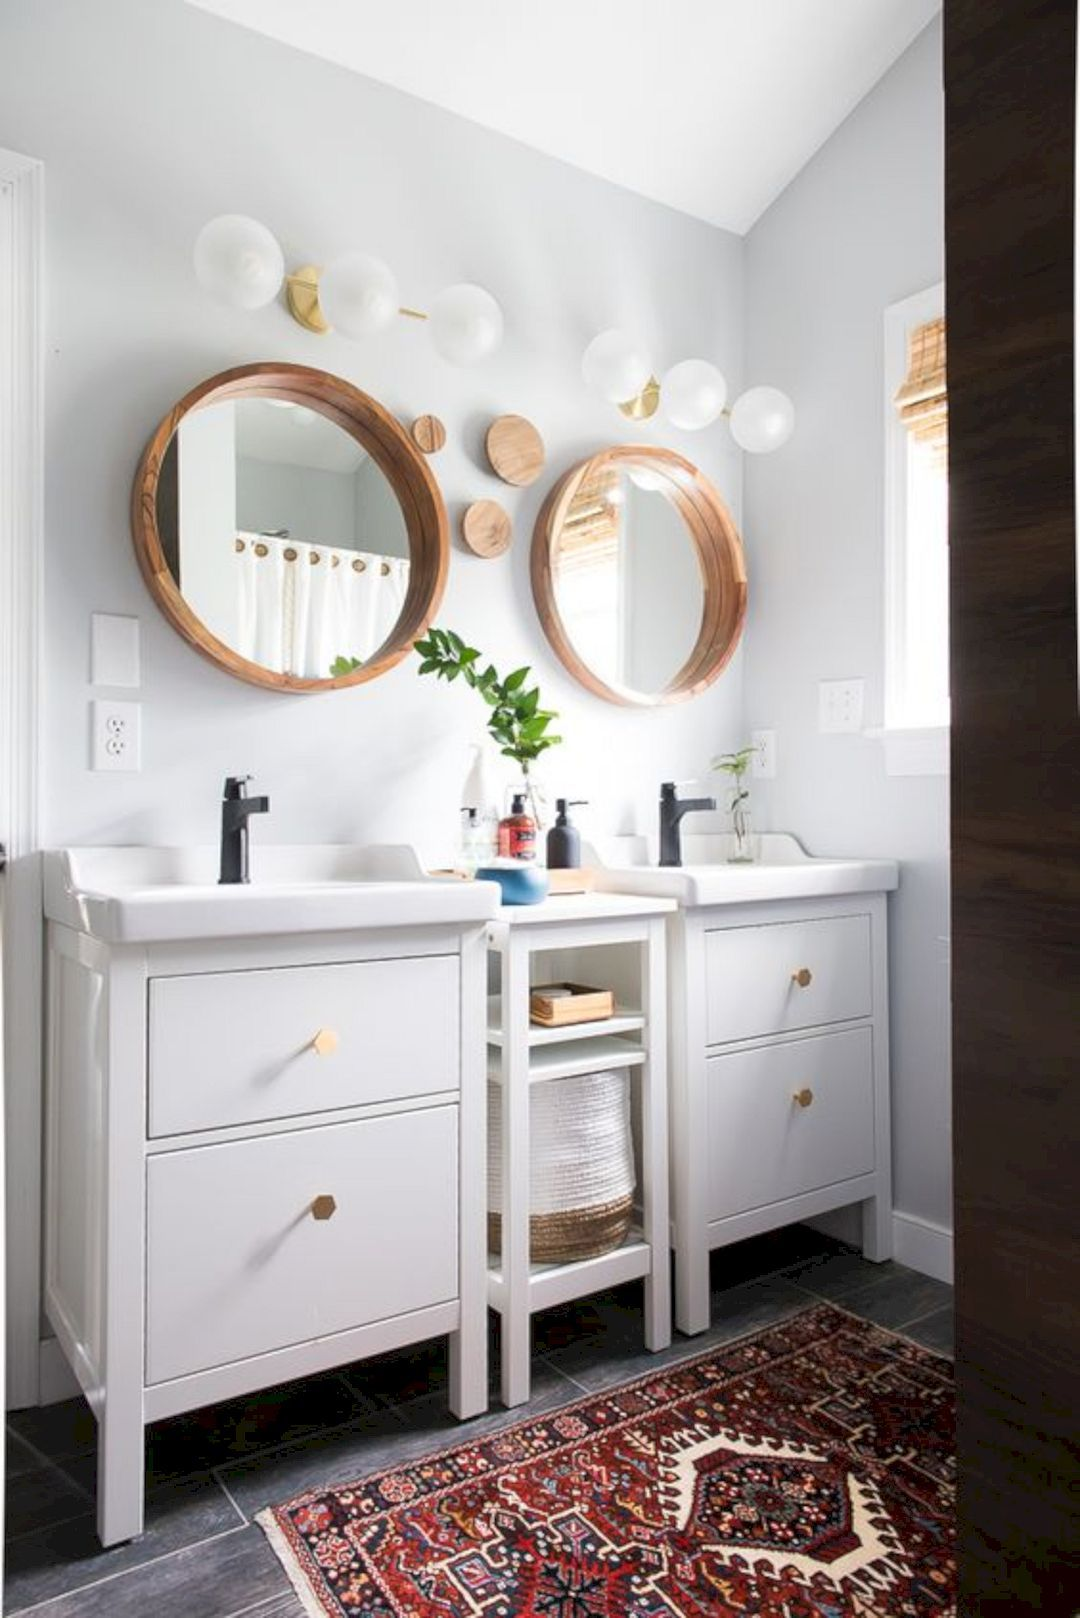 15 Inspiring Bathroom Design Ideas with IKEA | Pinterest | Bathroom on ikea basement, ikea in louisiana, ikea painting, ikea kitchen, ikea plumbing, ikea garden, ikea house designs, ikea countertops, ikea bedding, ikea bedroom decor ideas, ikea vanity sinks, ikea apartment designs, ikea living room, ikea tiles, ikea art, ikea modern bathrooms, ikea small house plans, ikea catalogue bathrooms, ikea apartment decor, ikea doors,